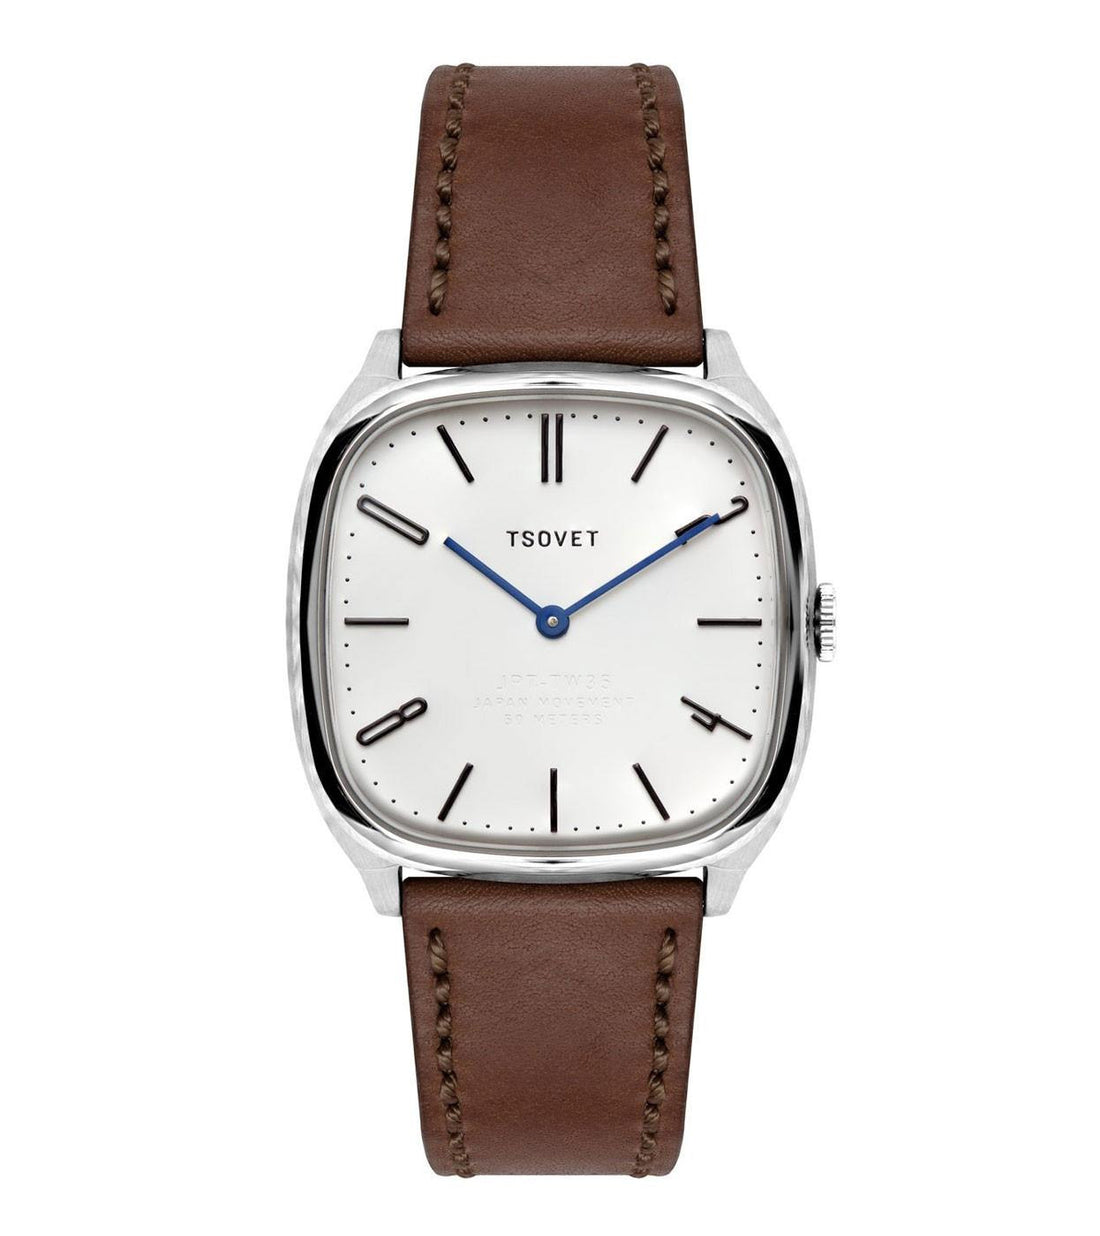 Tsovet Stainless/Brown/Natural - Accessories: Watches - Iron and Resin